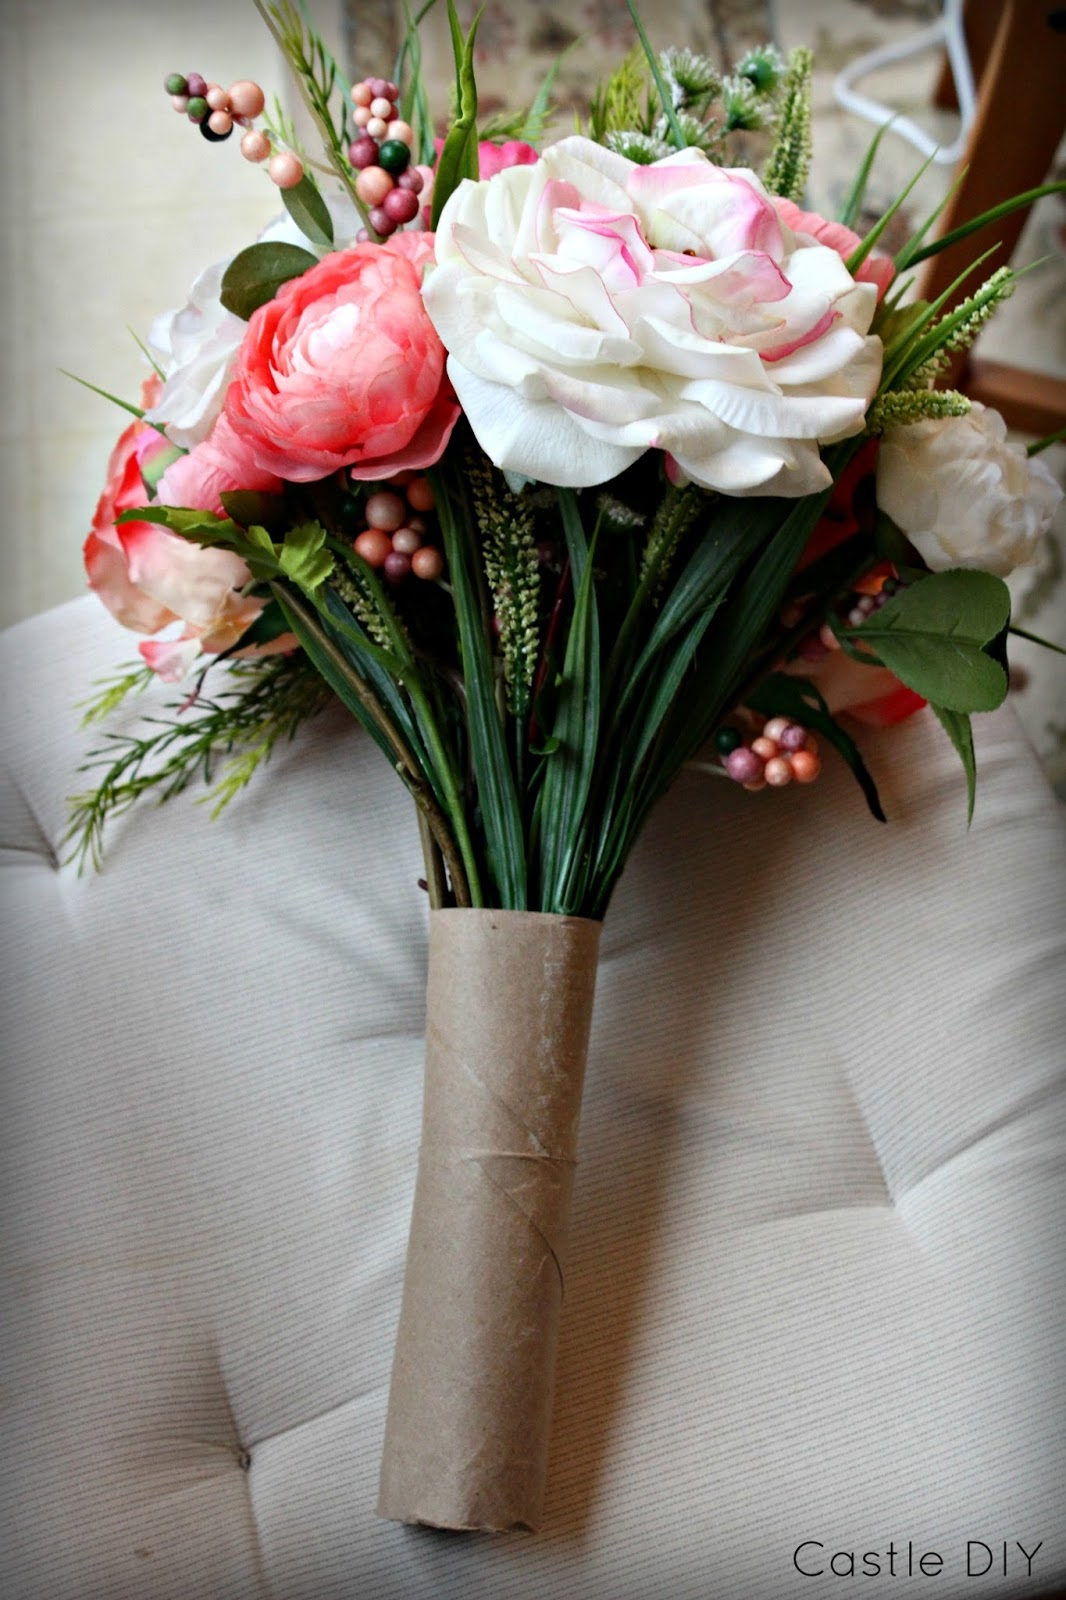 Castle diy faux flower bouquet for the cheap lazy bride i then cut a small strip of ribbon and glued it to the base of the stems along the bottom so that the ends of the stems could not be seen izmirmasajfo